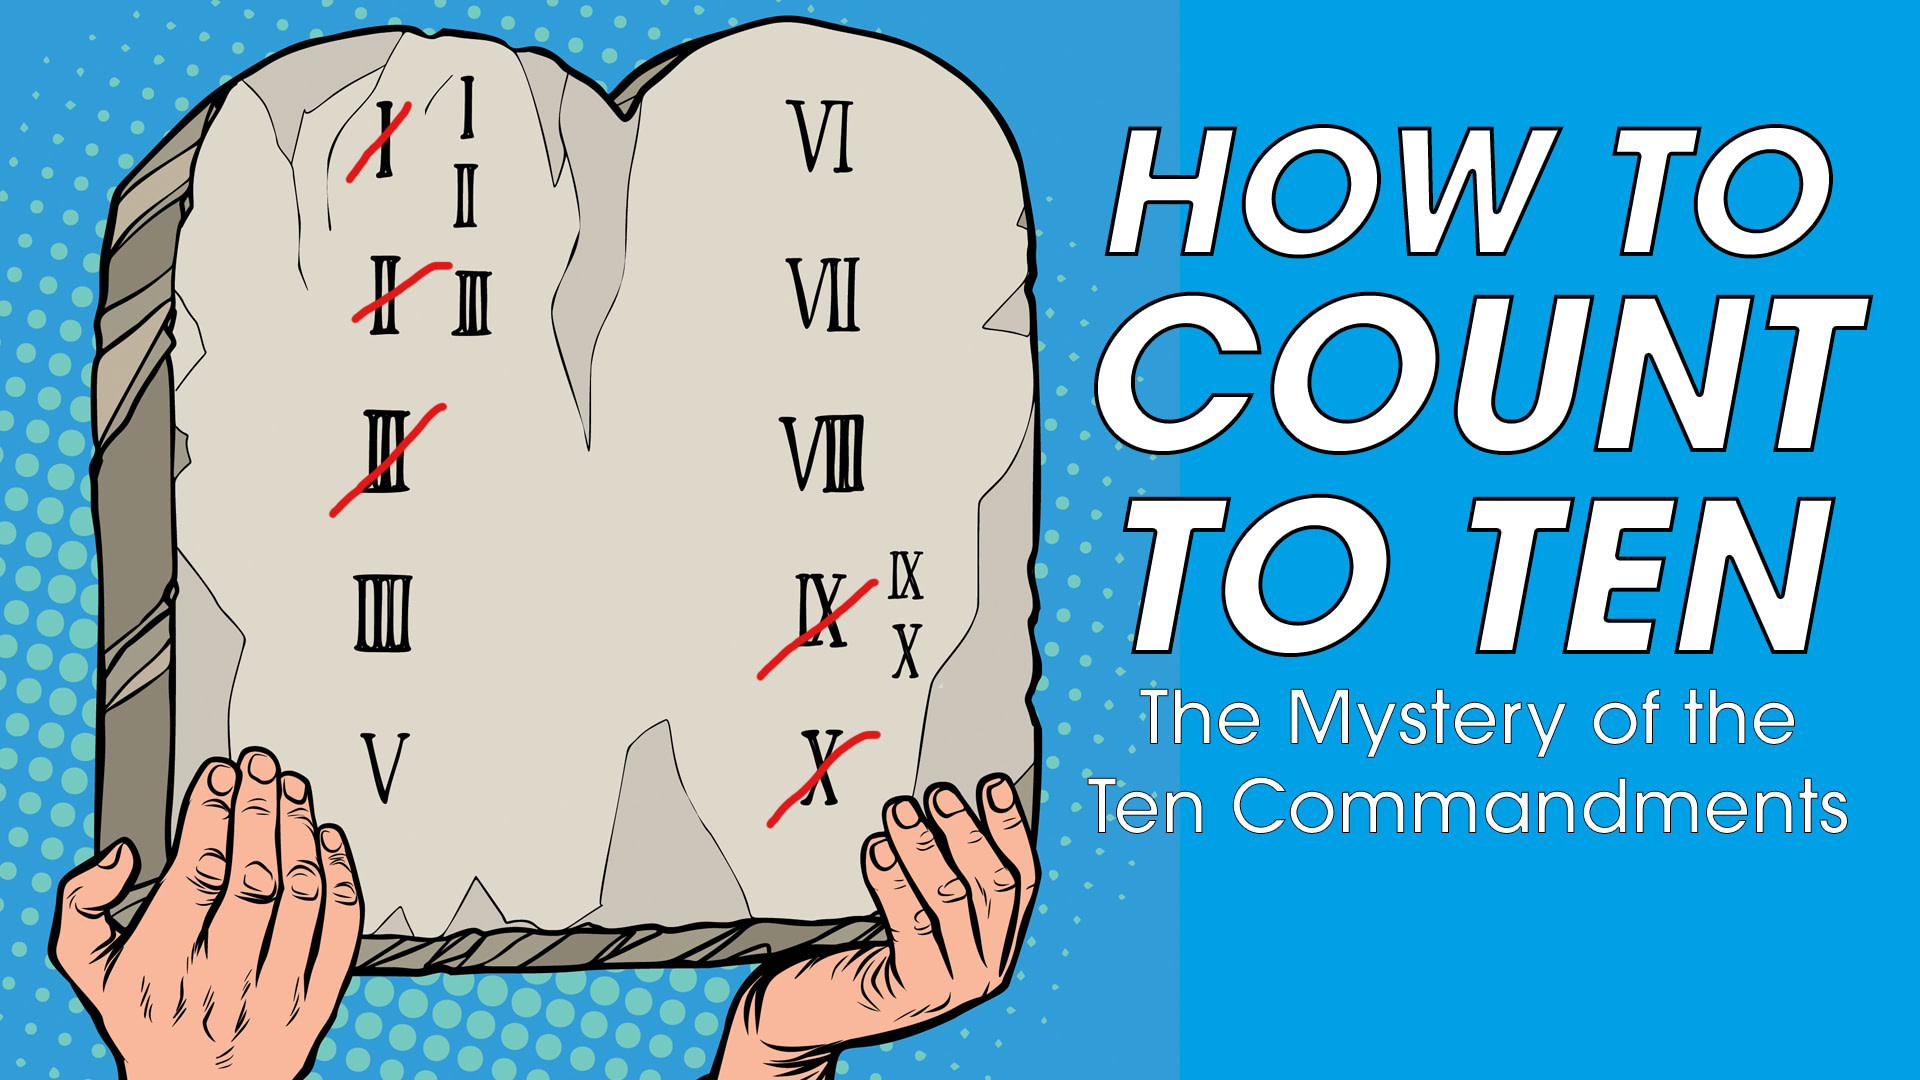 How to Count to Ten, The Mystery of the Ten Commandments